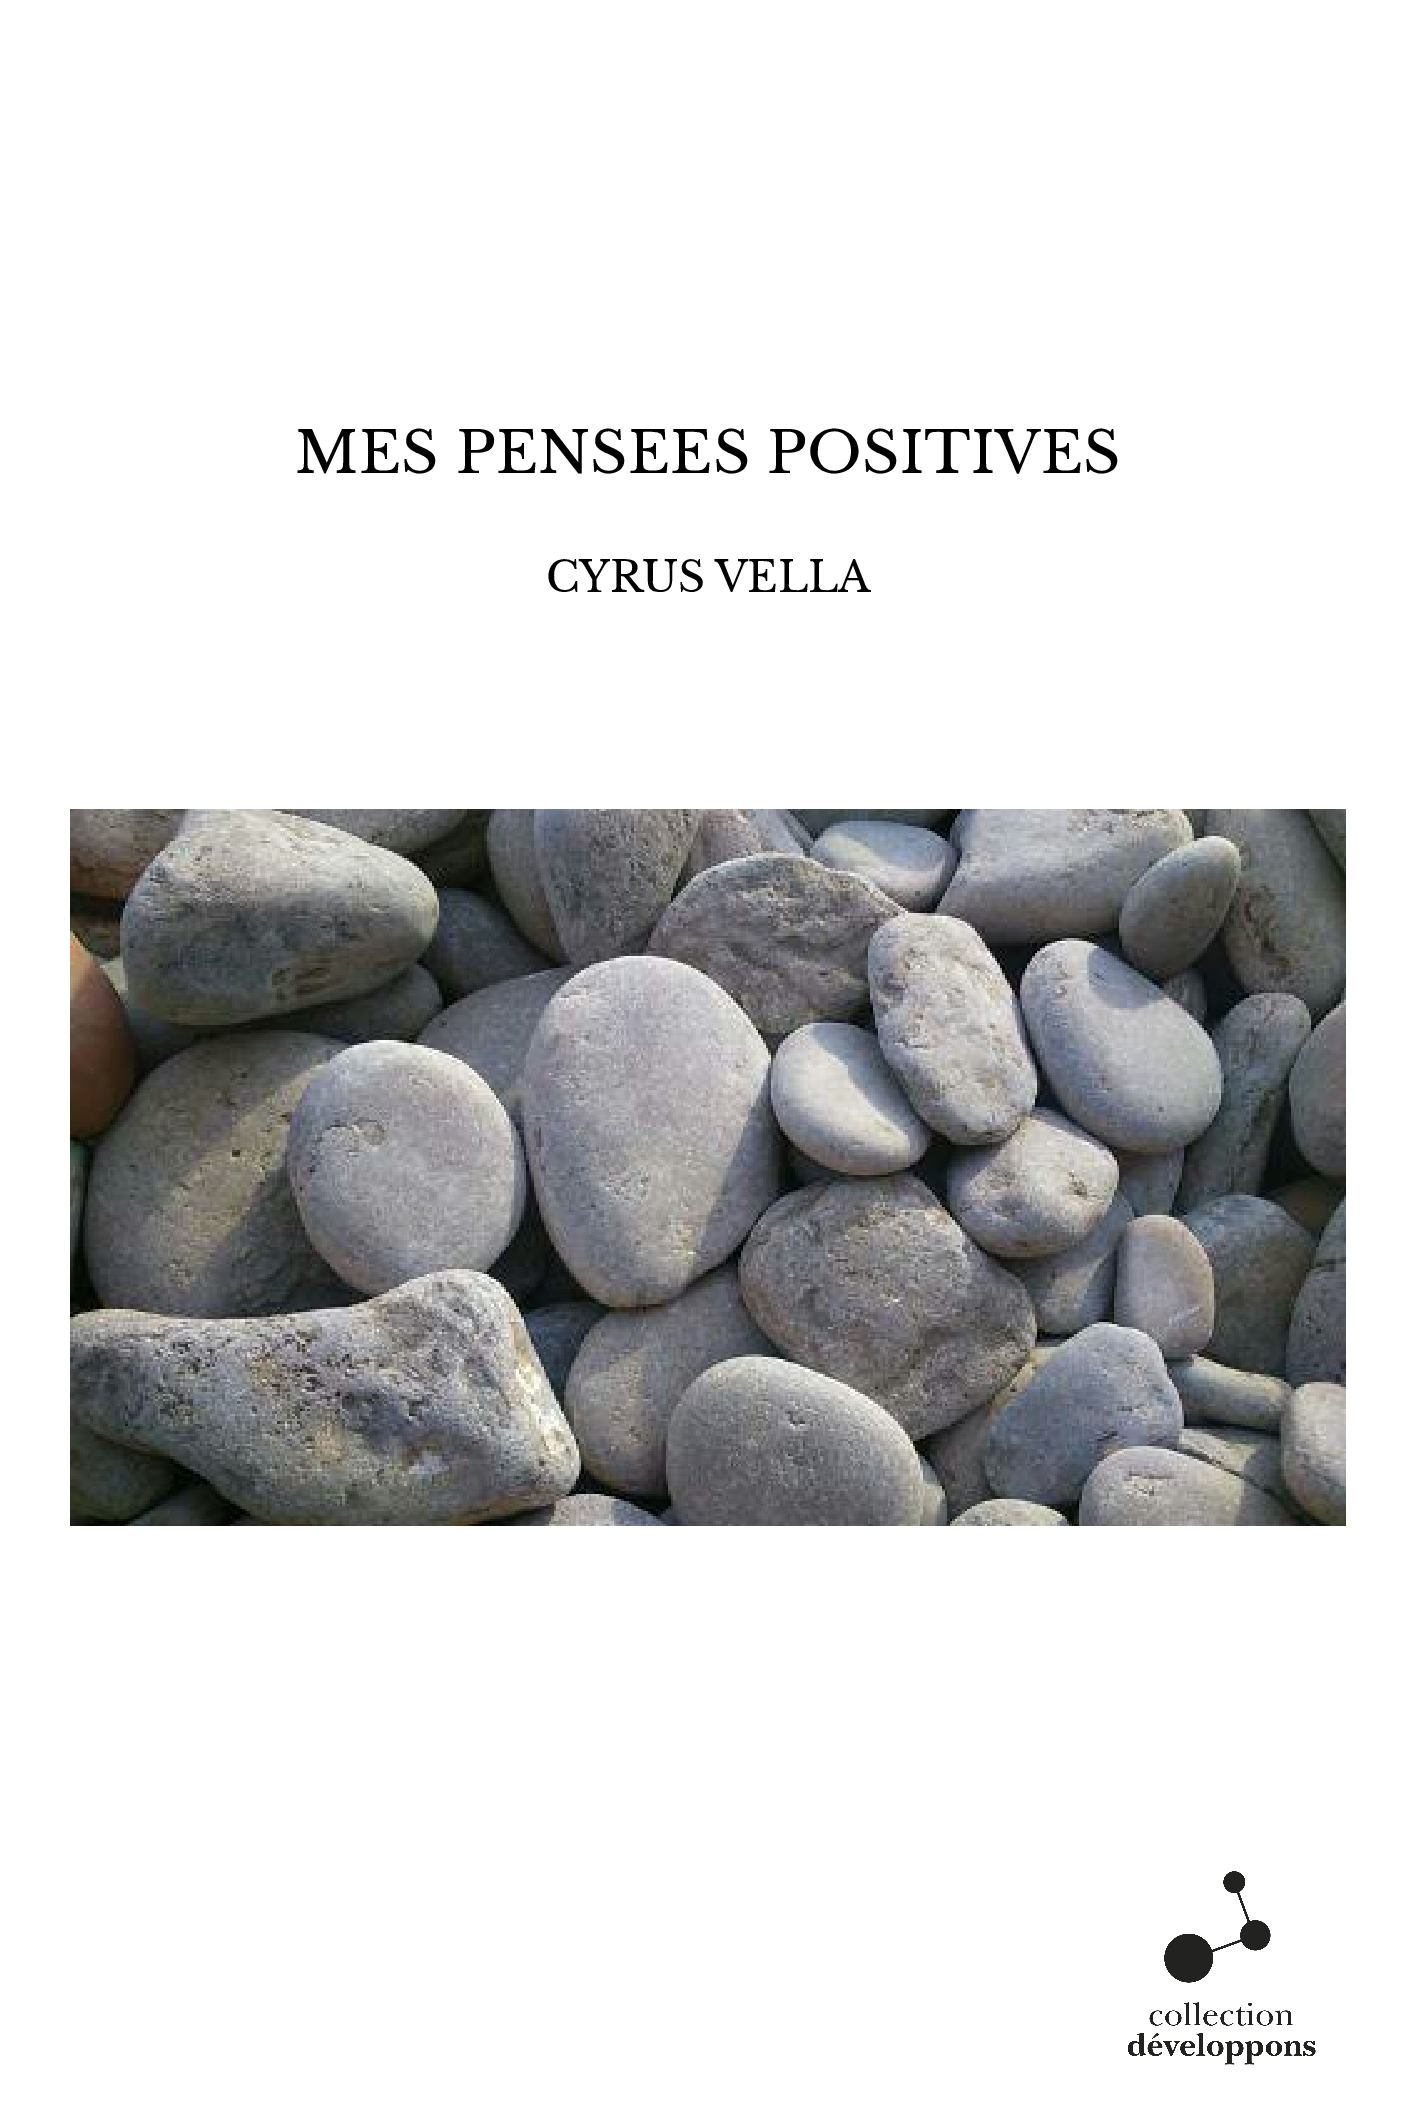 MES PENSEES POSITIVES